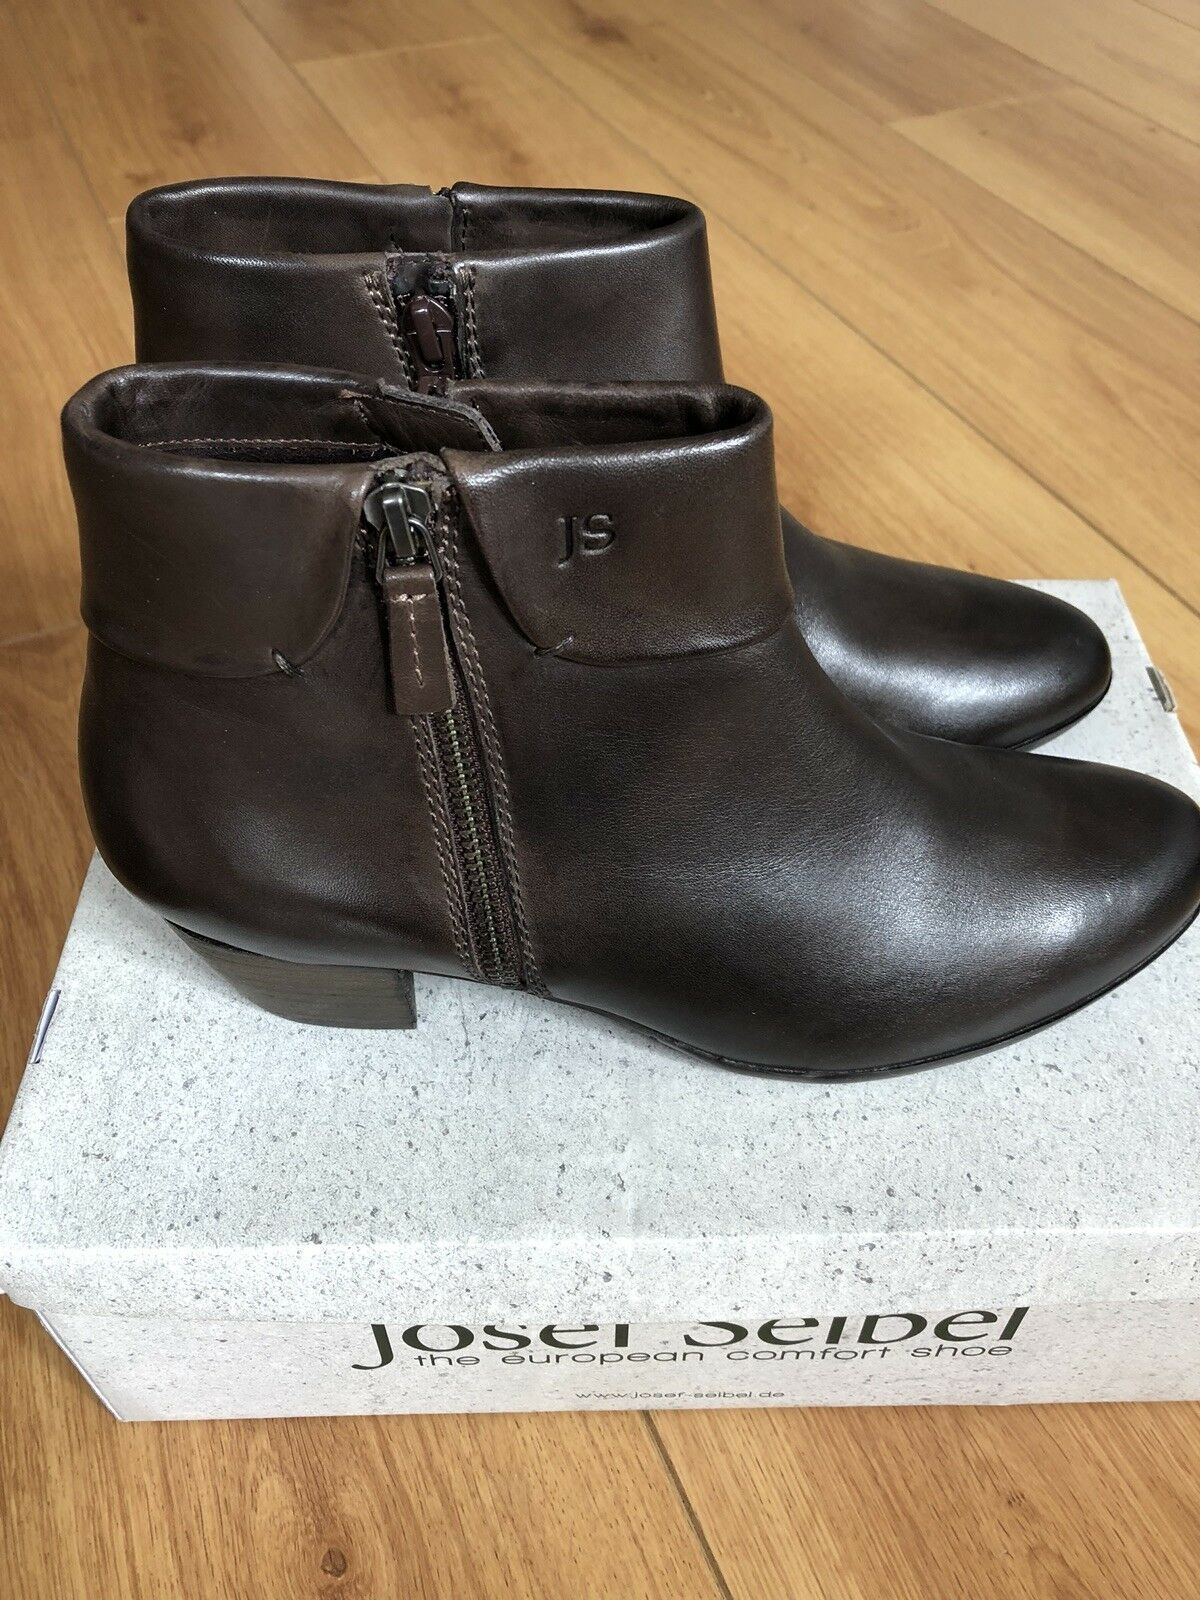 Nouvelle Marque Josef SEIBEL Sue 05 Bottines Femmes en Marron Chocolat UK 7.5 41